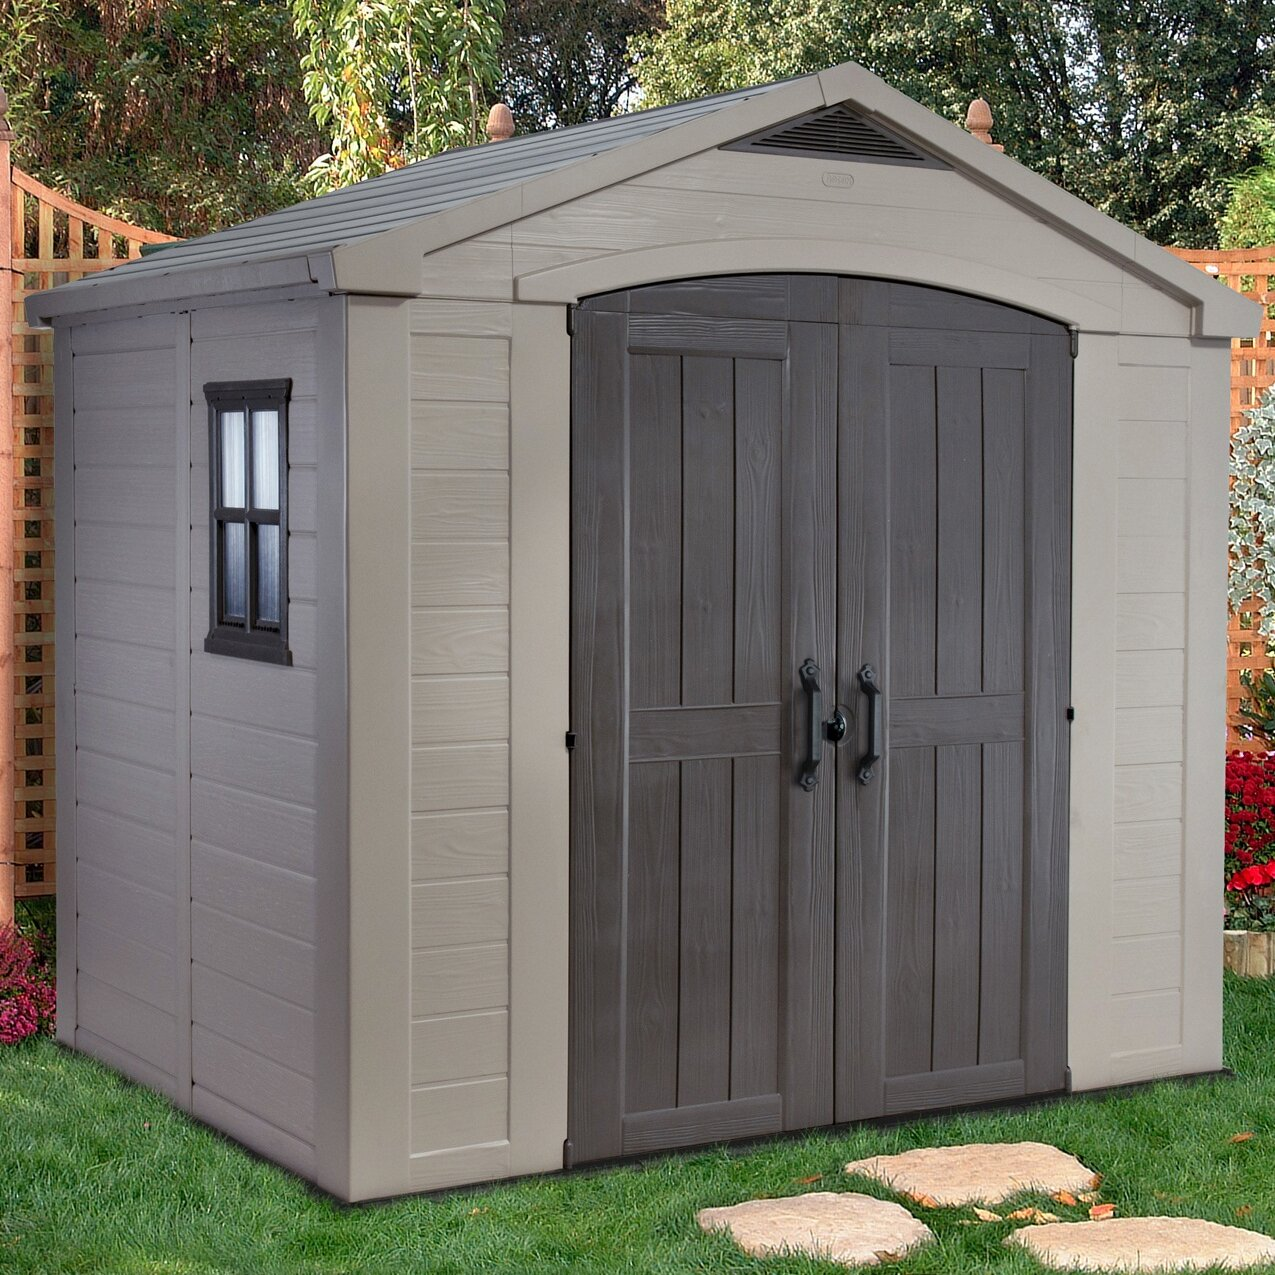 Keter factor 8 ft w x 6 ft d resin storage shed for Resin garden shed